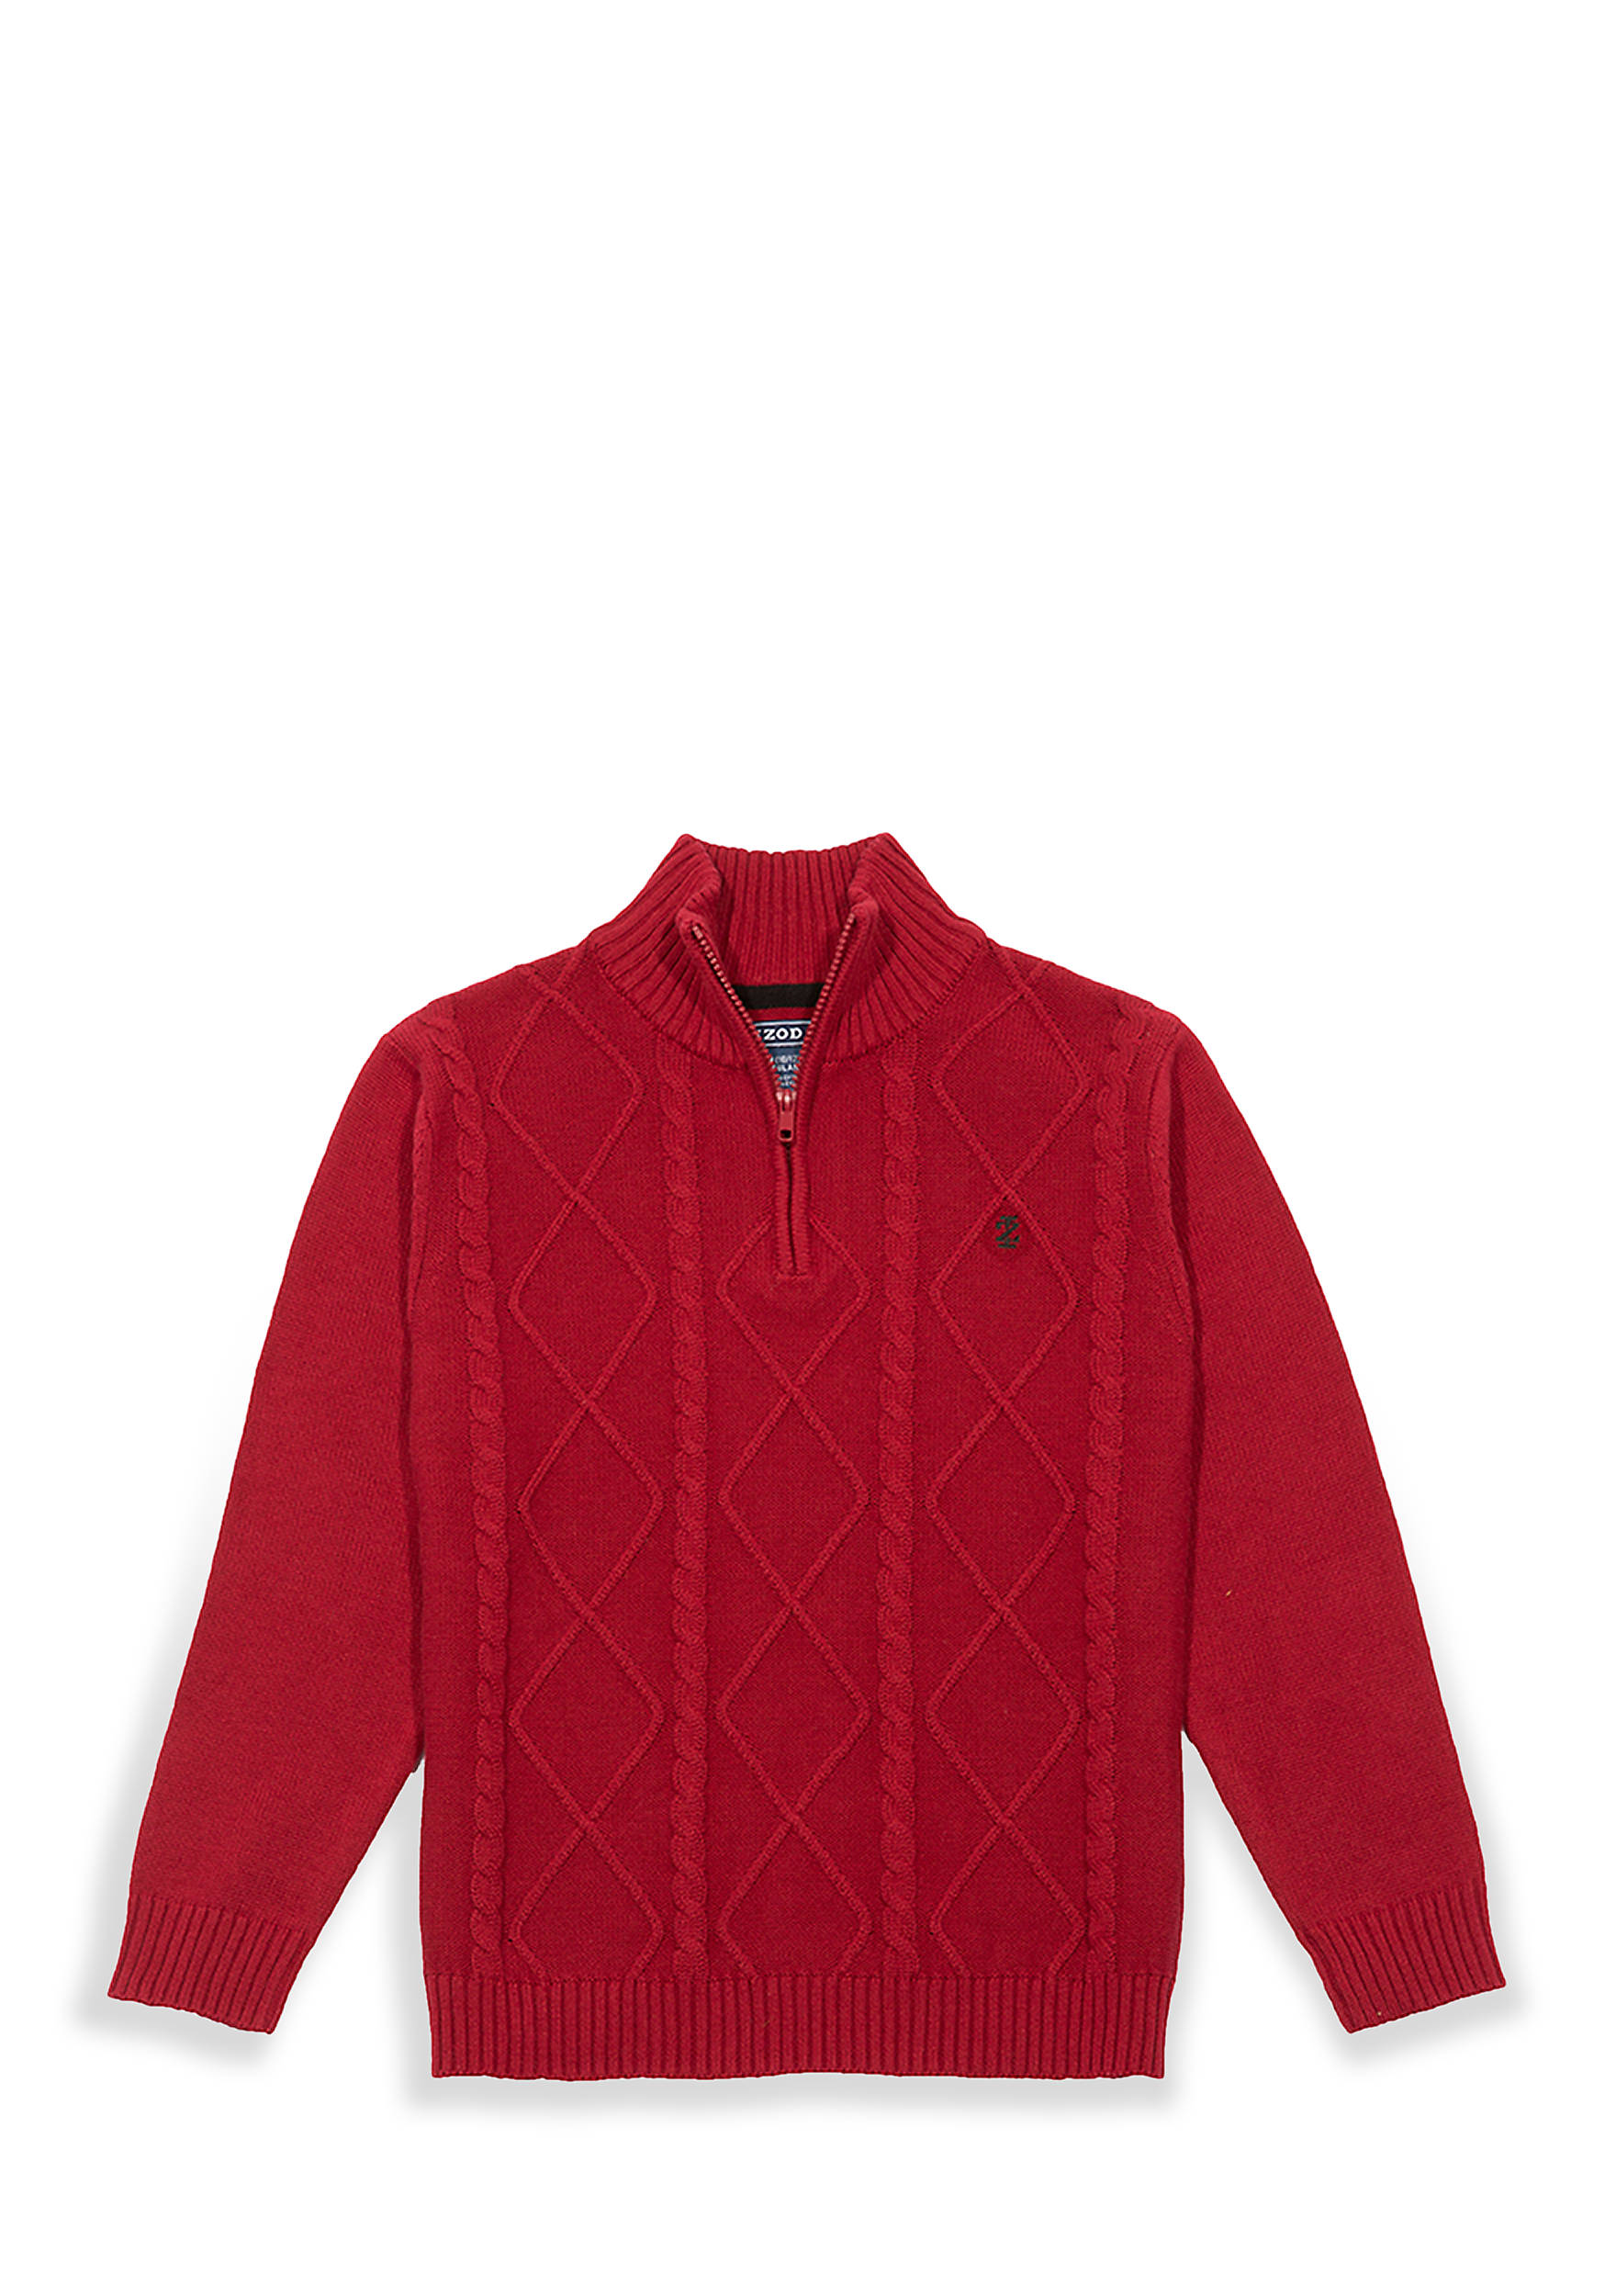 IZOD Boys 4-7 Red Solid 14 Zip Sweater | belk